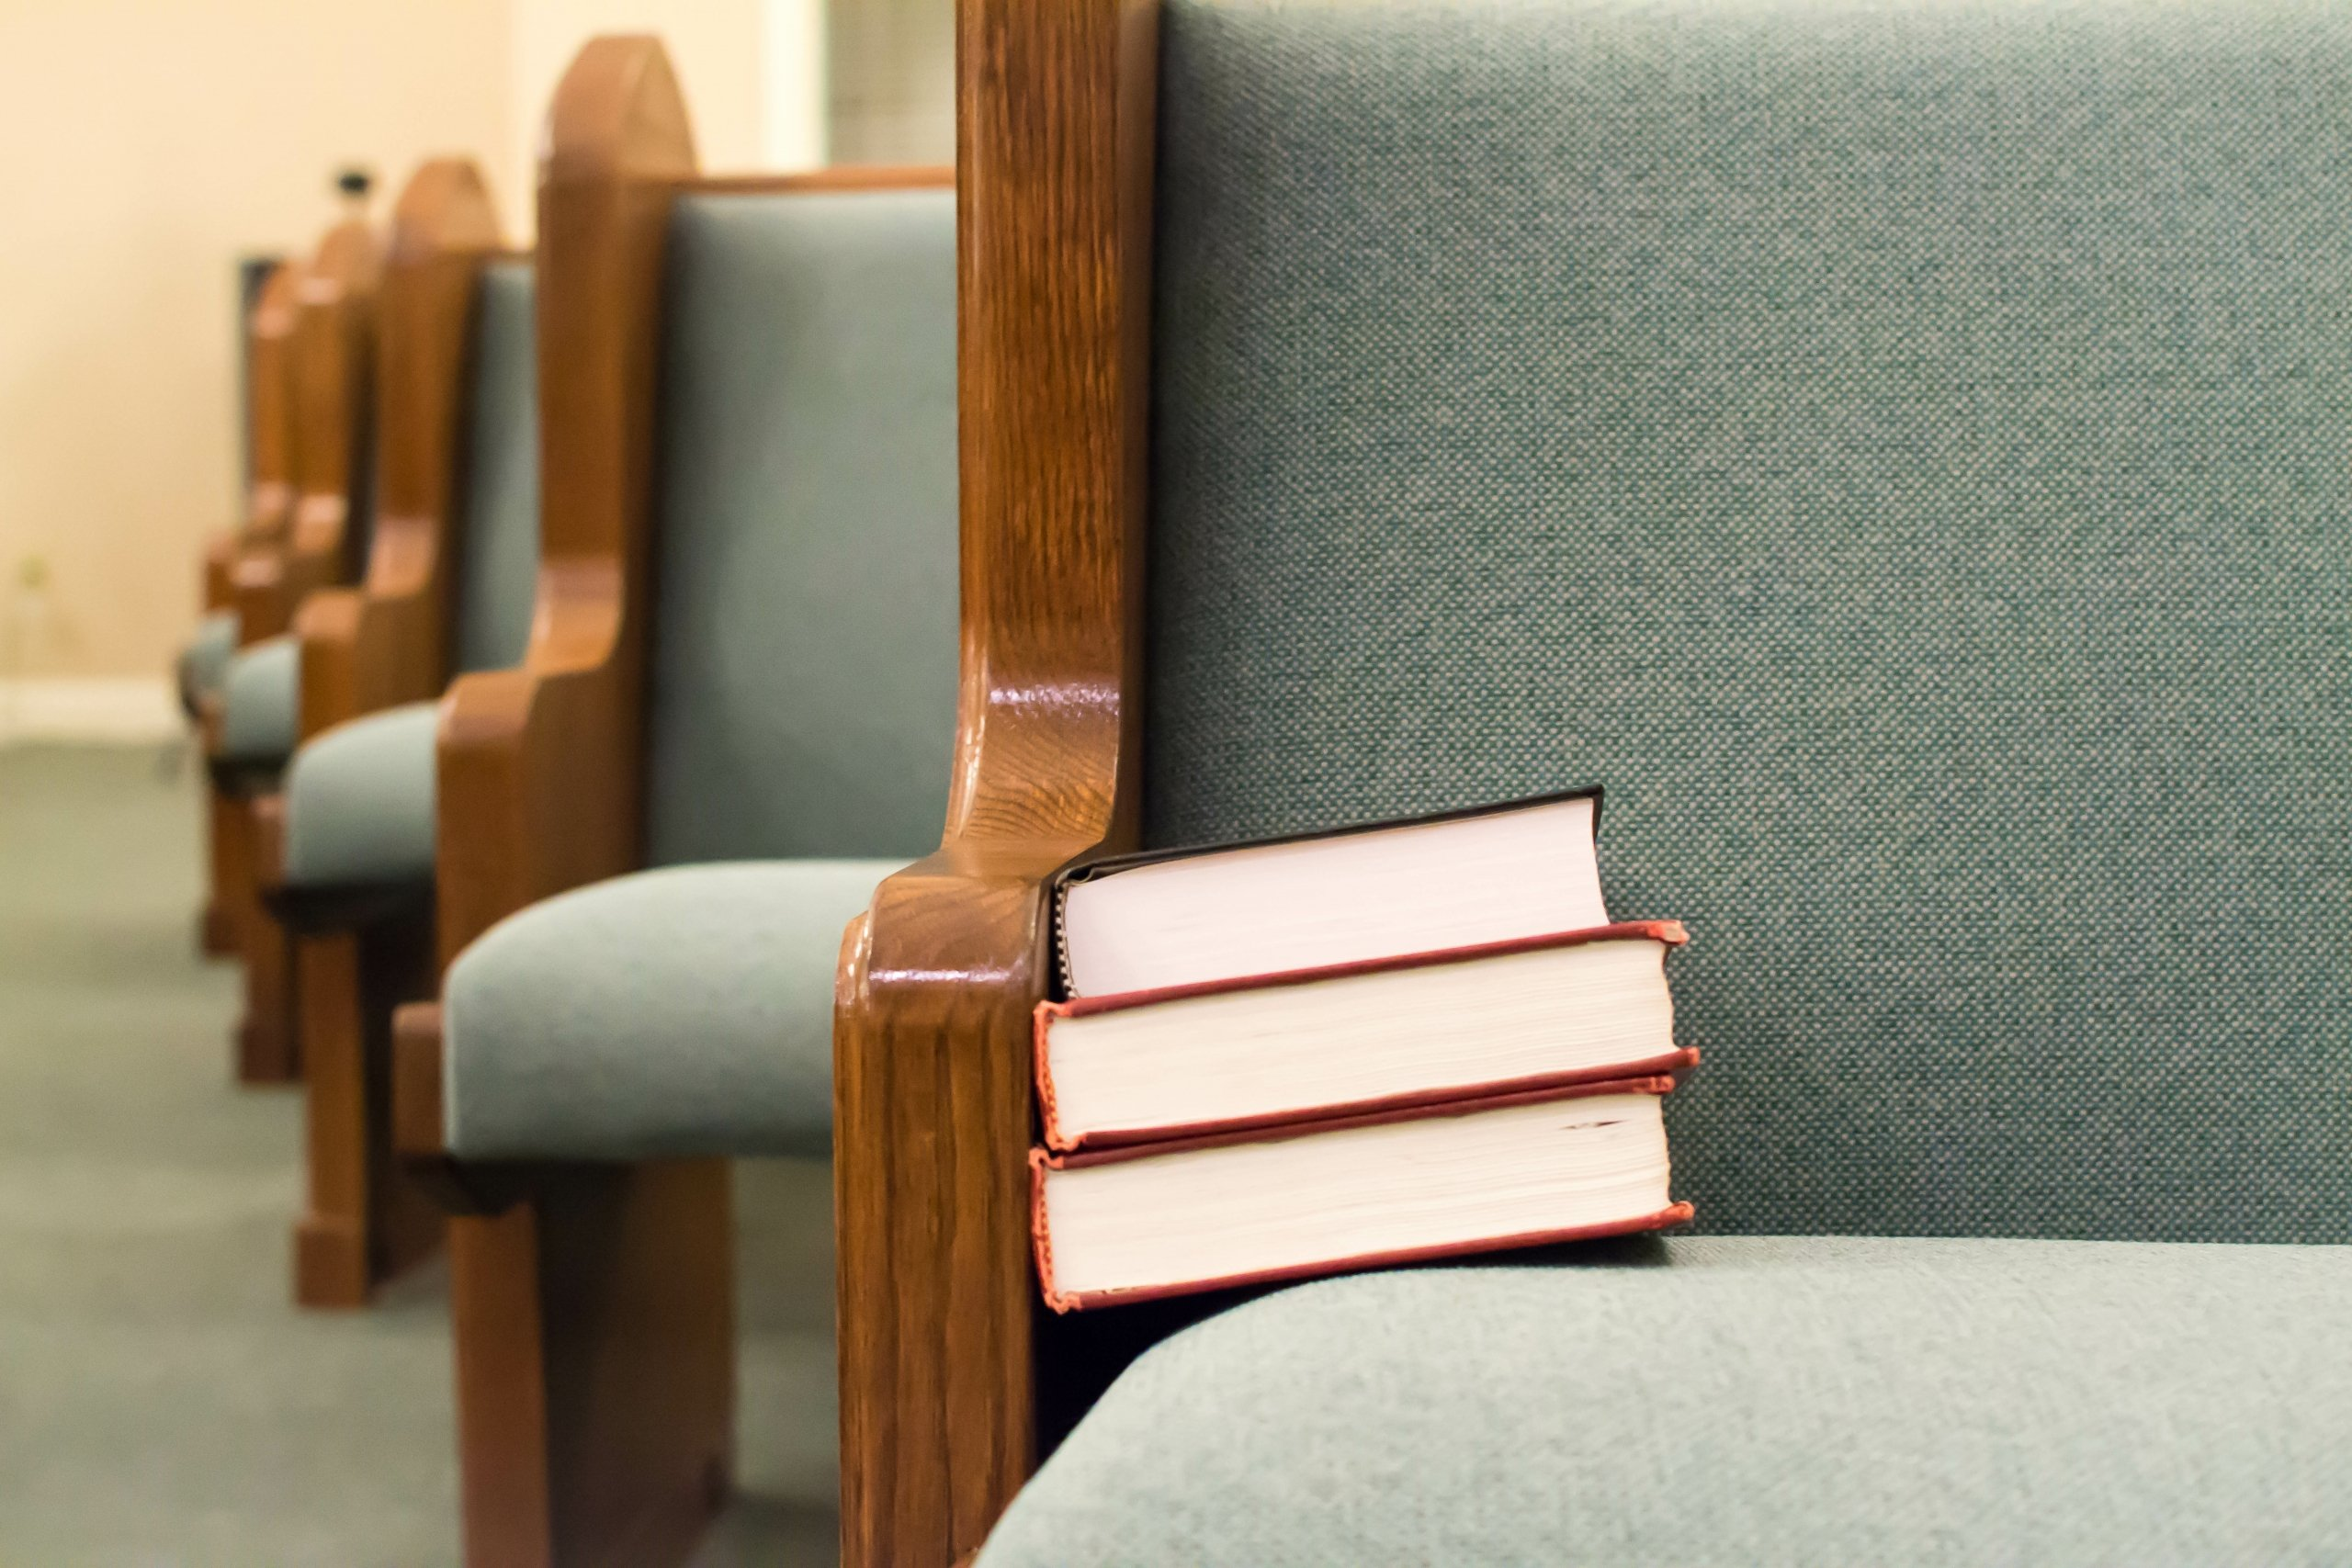 Books stack on church pew